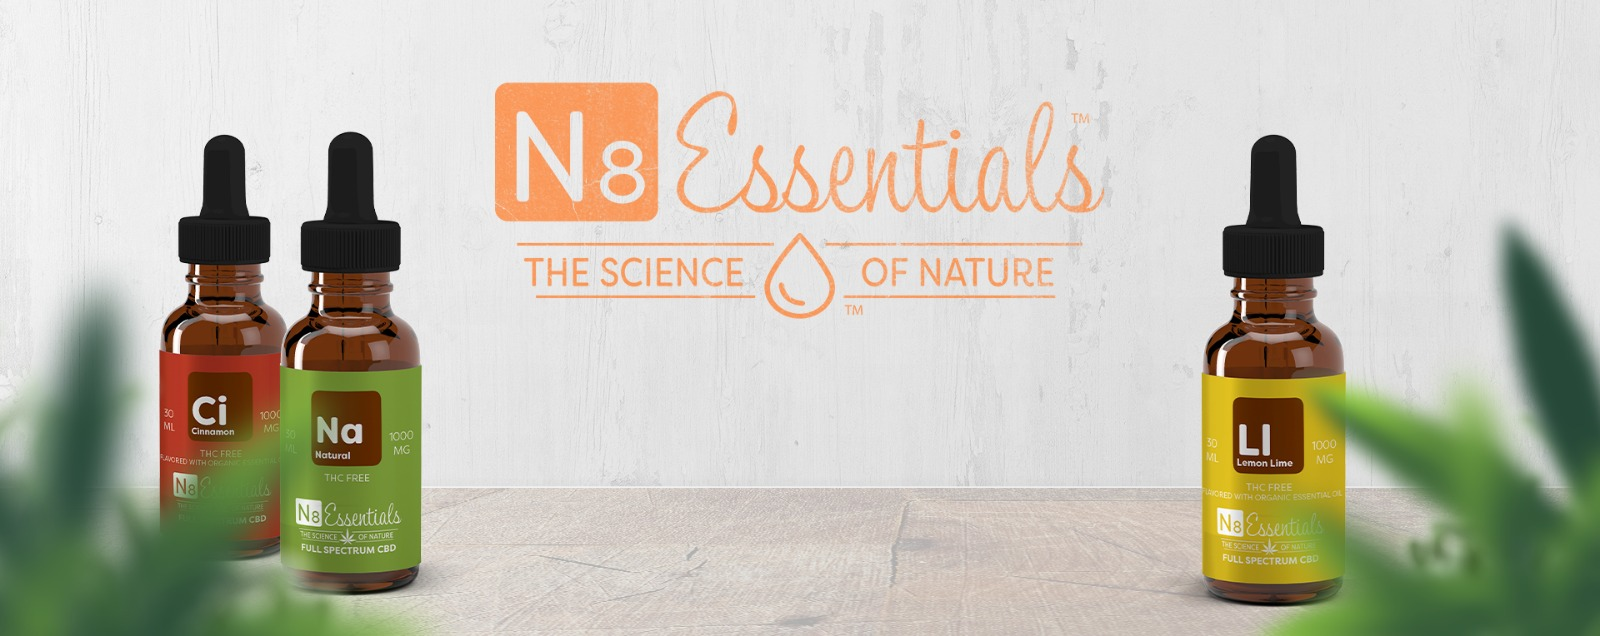 The New N8 Essentials